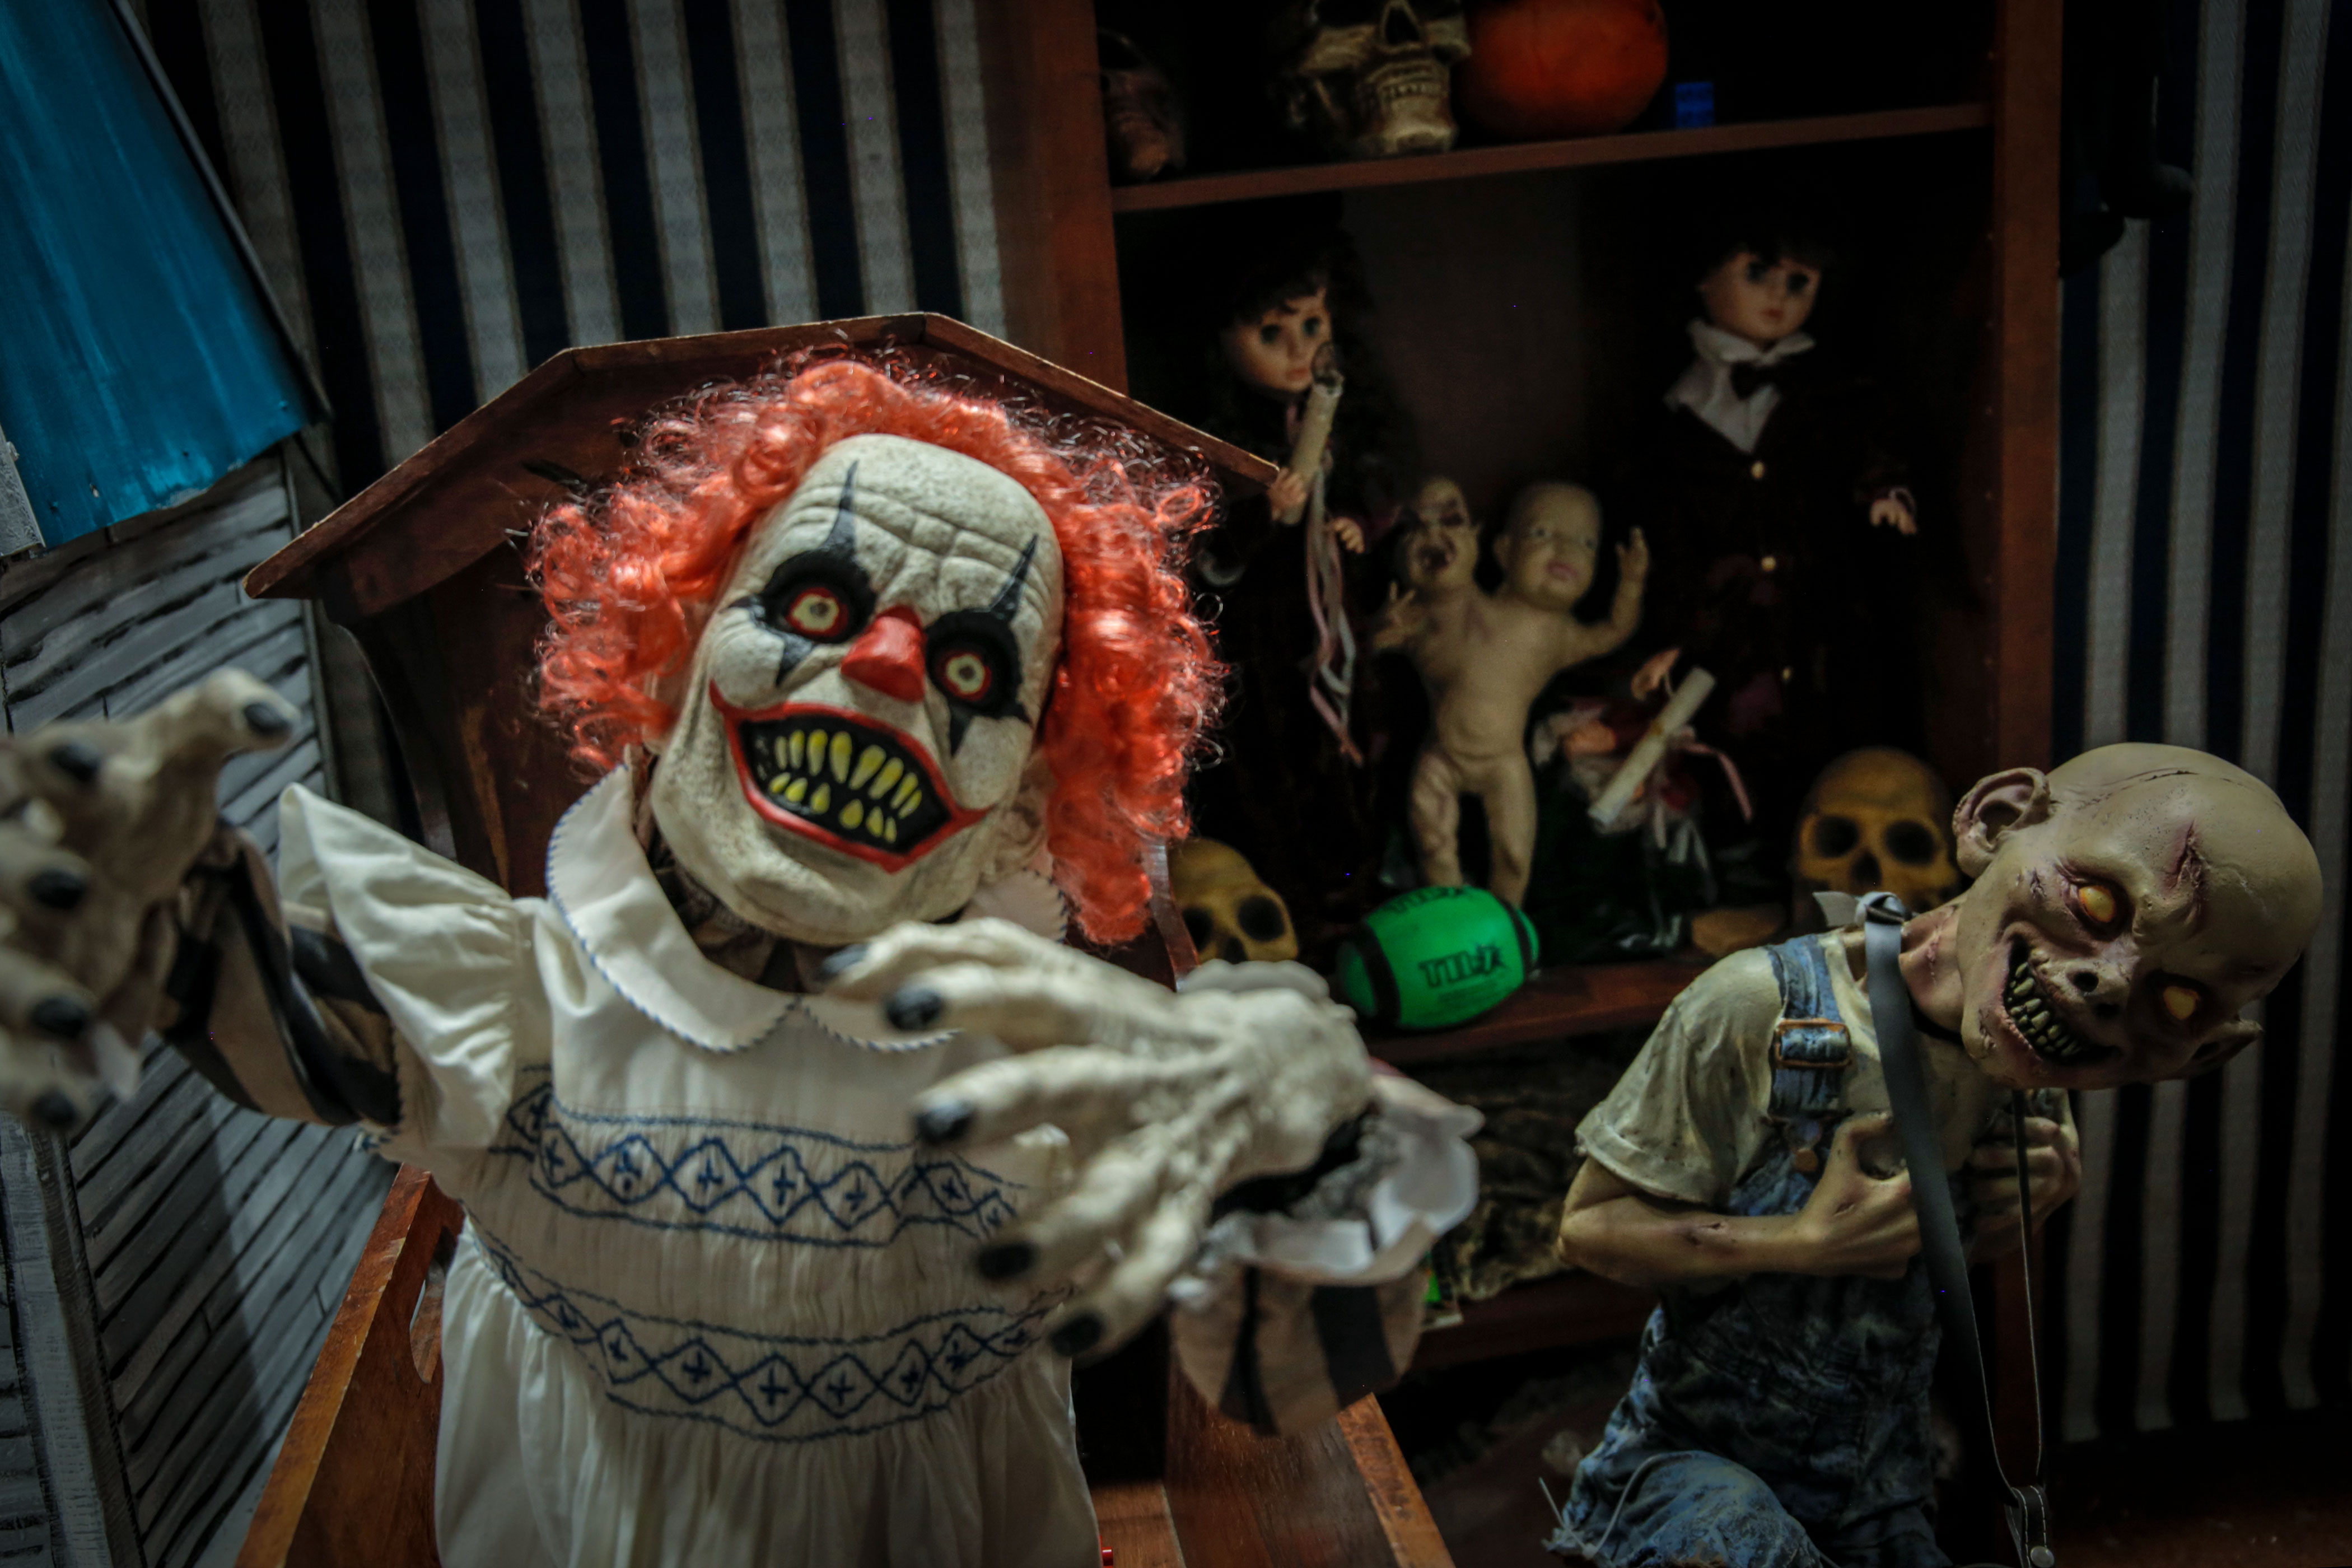 <p>Animatronic clowns, zombies and skeletons spring out at visitors throughout the Haunted Mansion.</p>